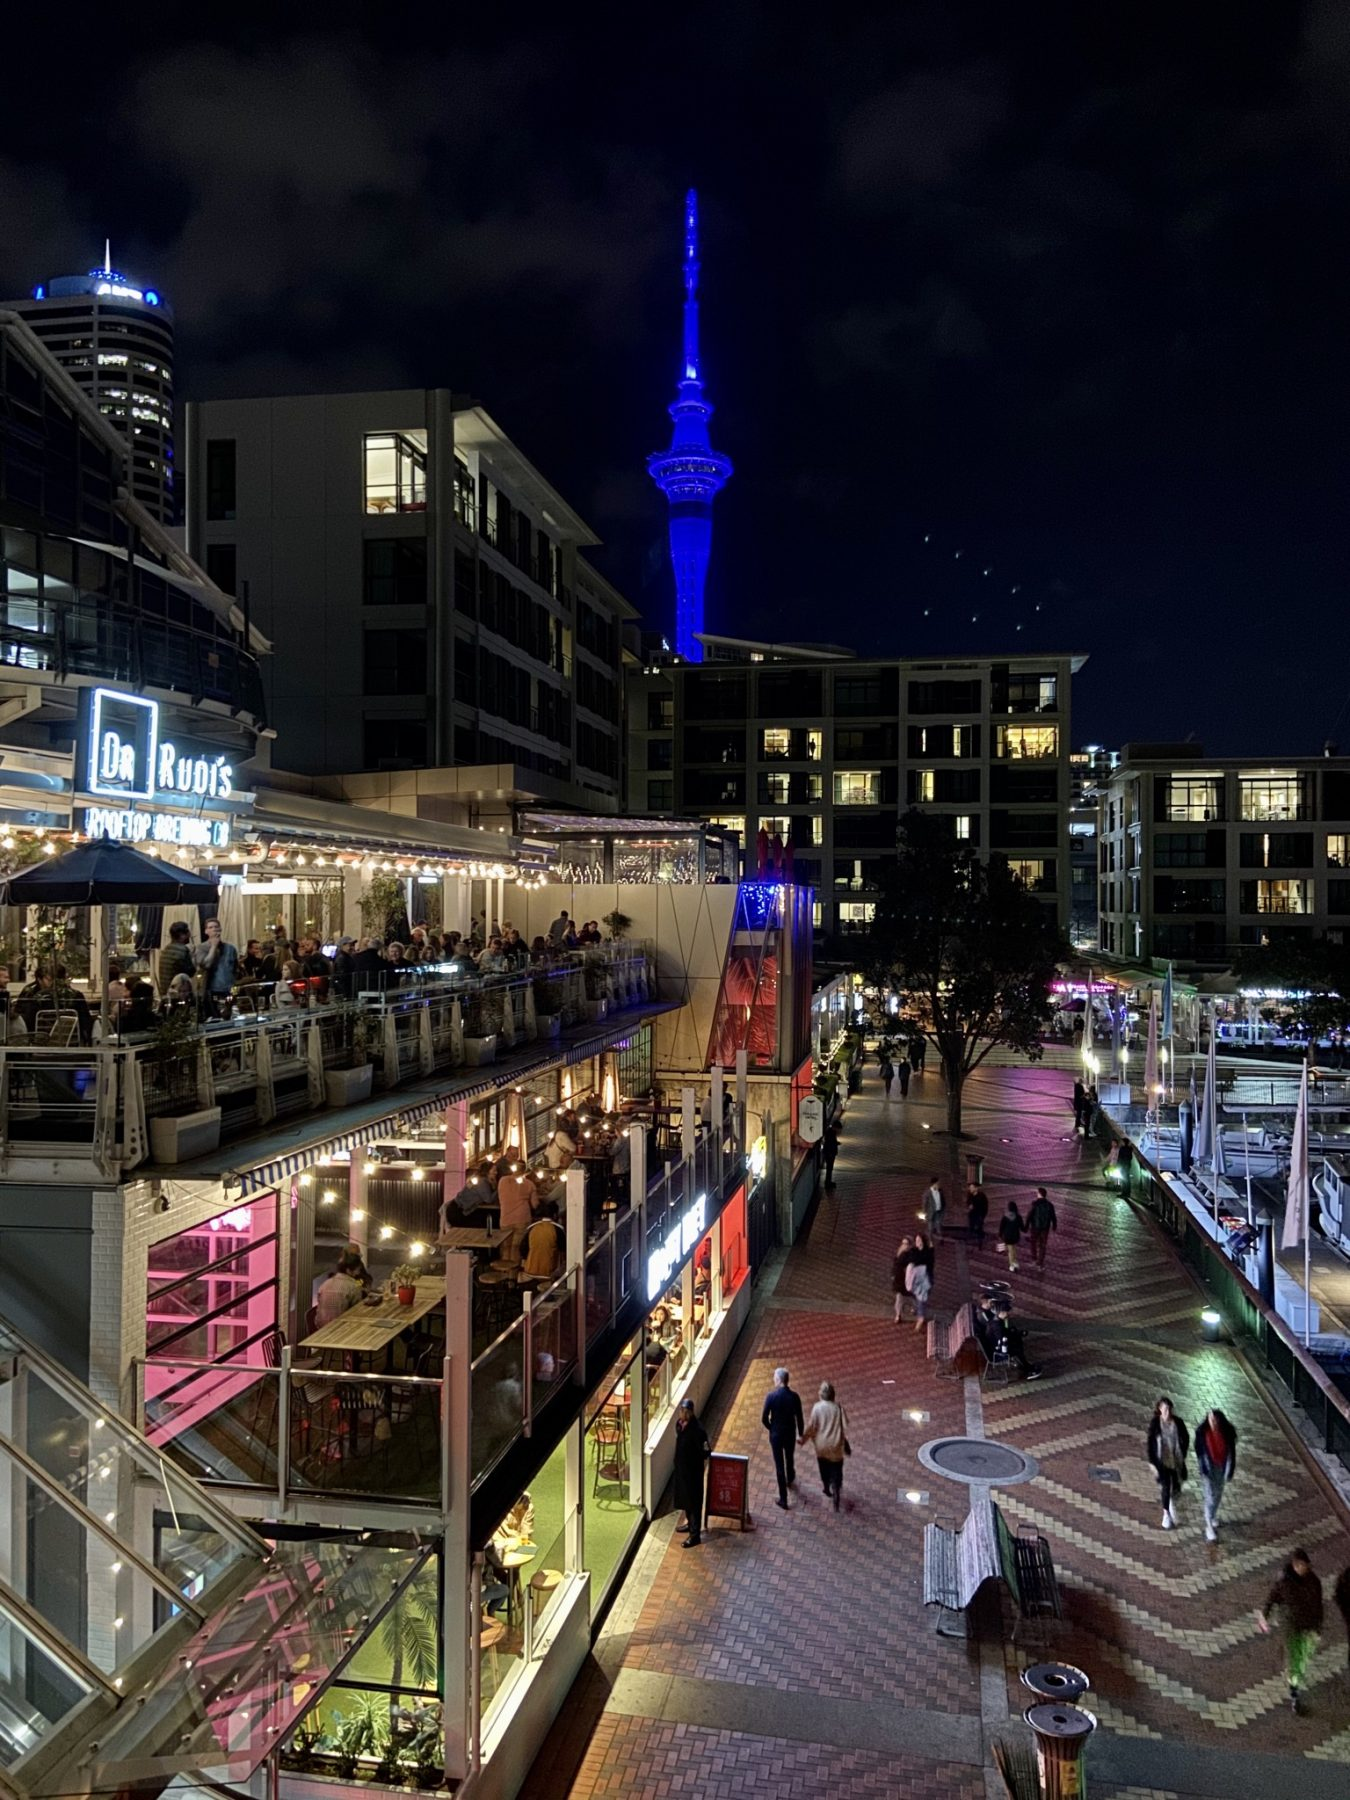 View of nightlife from Saint Alice - Viaduct Harbour - WhereToGo.co.nz